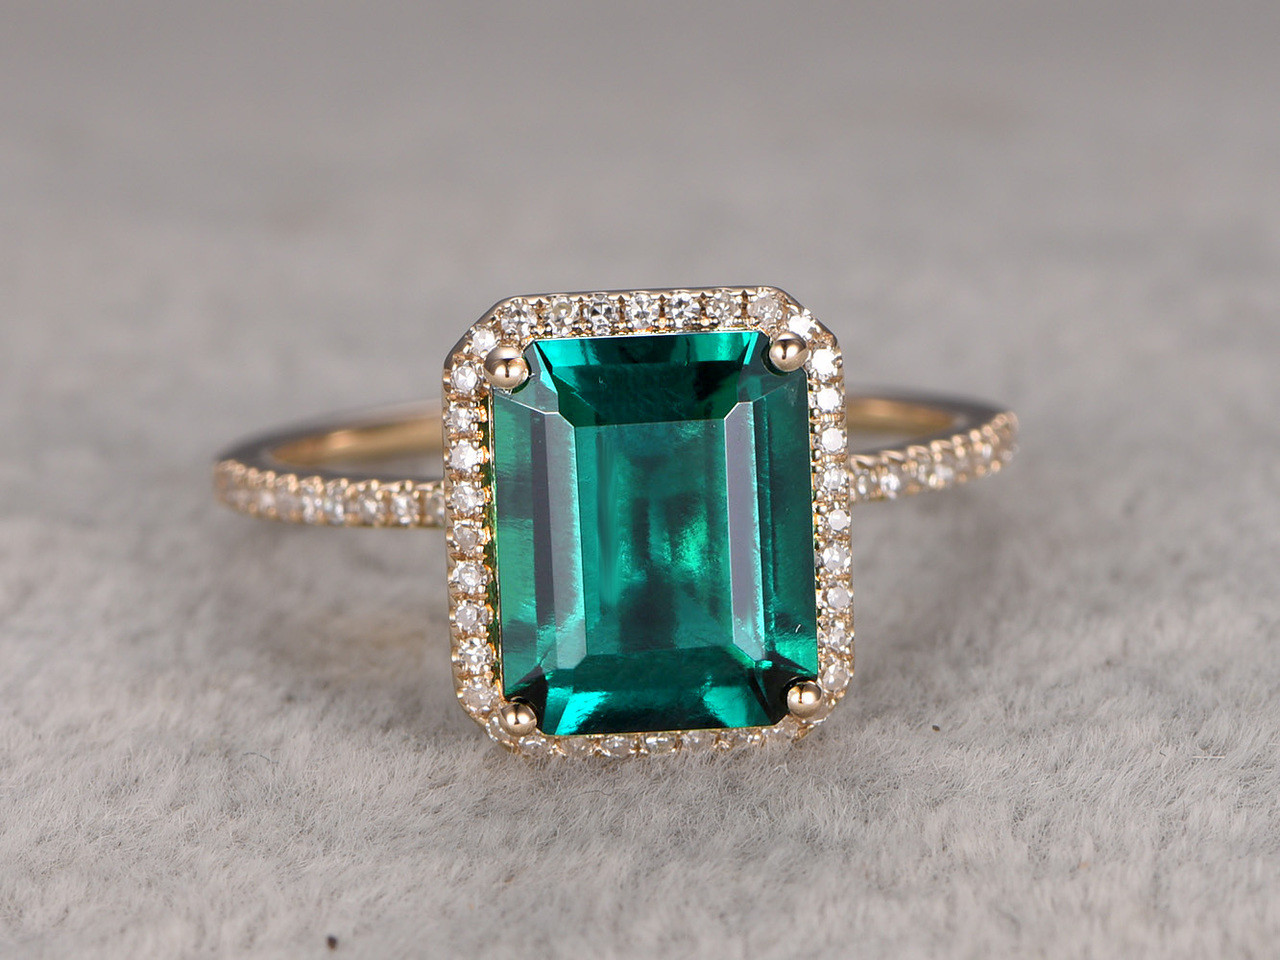 26 Carat Emerald Diamond Engagement Ring Yellow Gold Halo. Amythyst Wedding Rings. Enchanted Engagement Rings. 14k Gold Wedding Rings. Pretty Band Engagement Rings. Leo Birthstone Rings. Pale Pink Wedding Rings. De Beer Engagement Rings. Pooja Name Engagement Rings